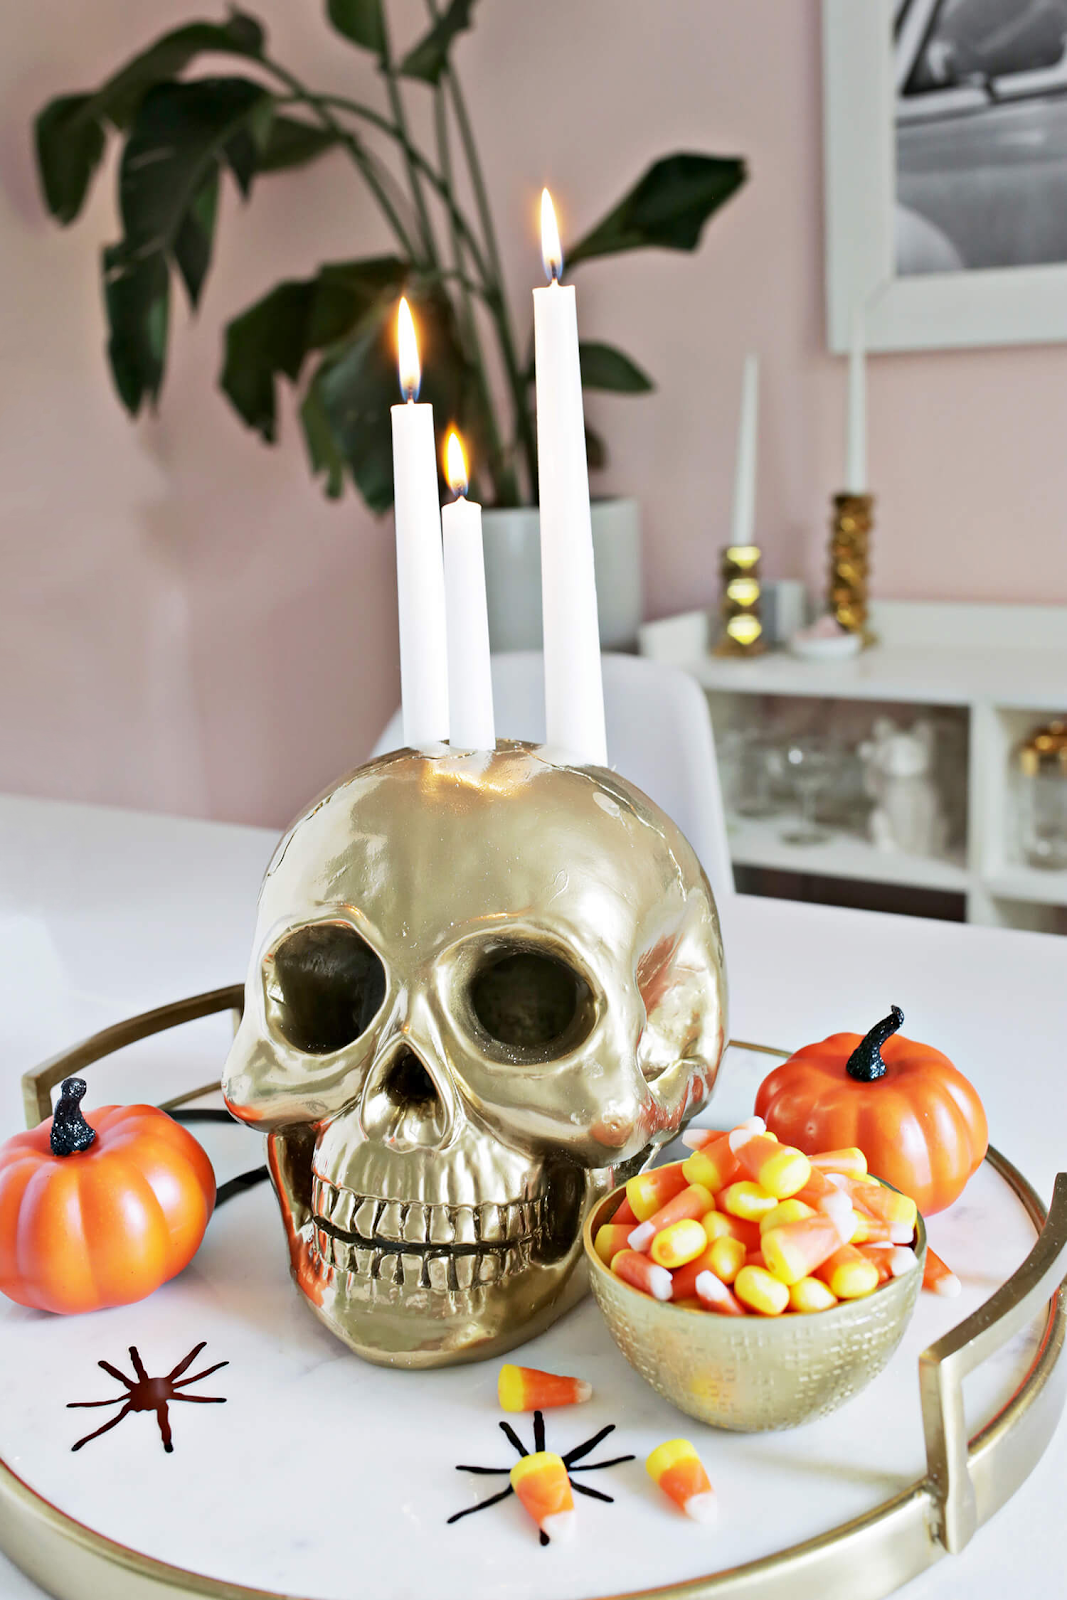 Skull Candle Holder: These 30 DIY Halloween Decorations That Are Wickedly Creative will save you money and allow your creativity to flourish